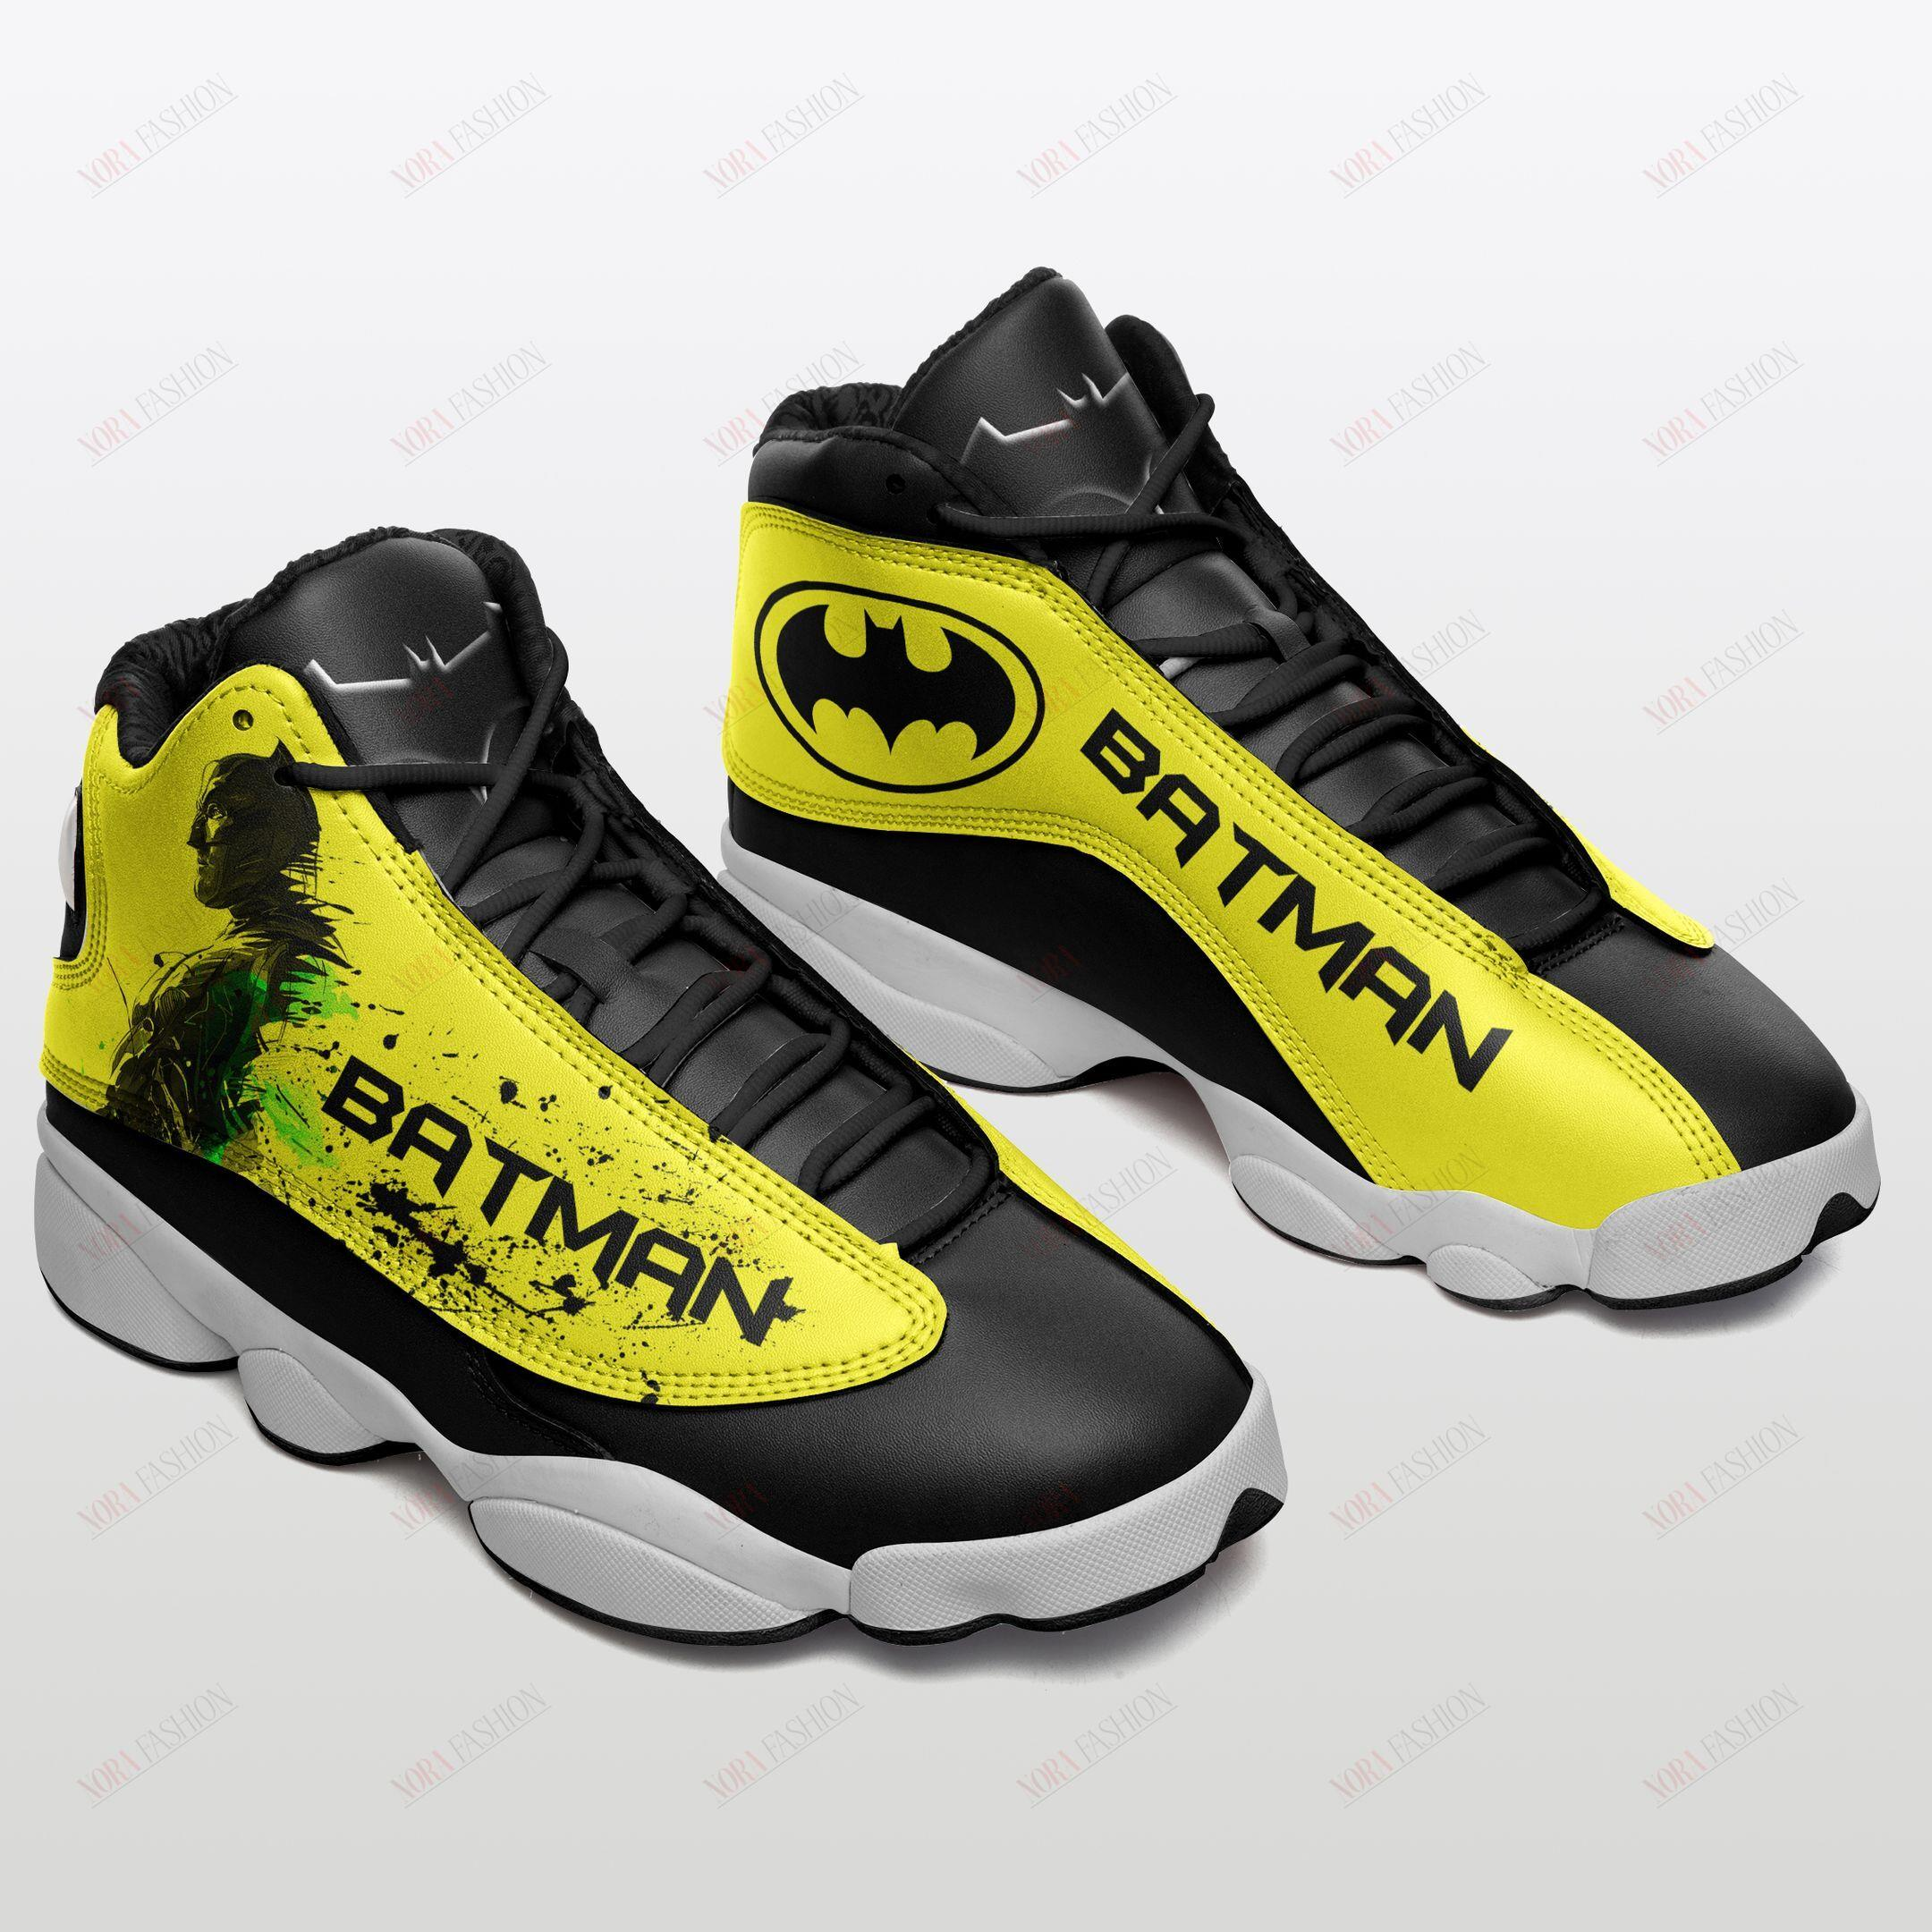 Batman Air Jordan 13 Sneakers Sport Shoes Plus Size